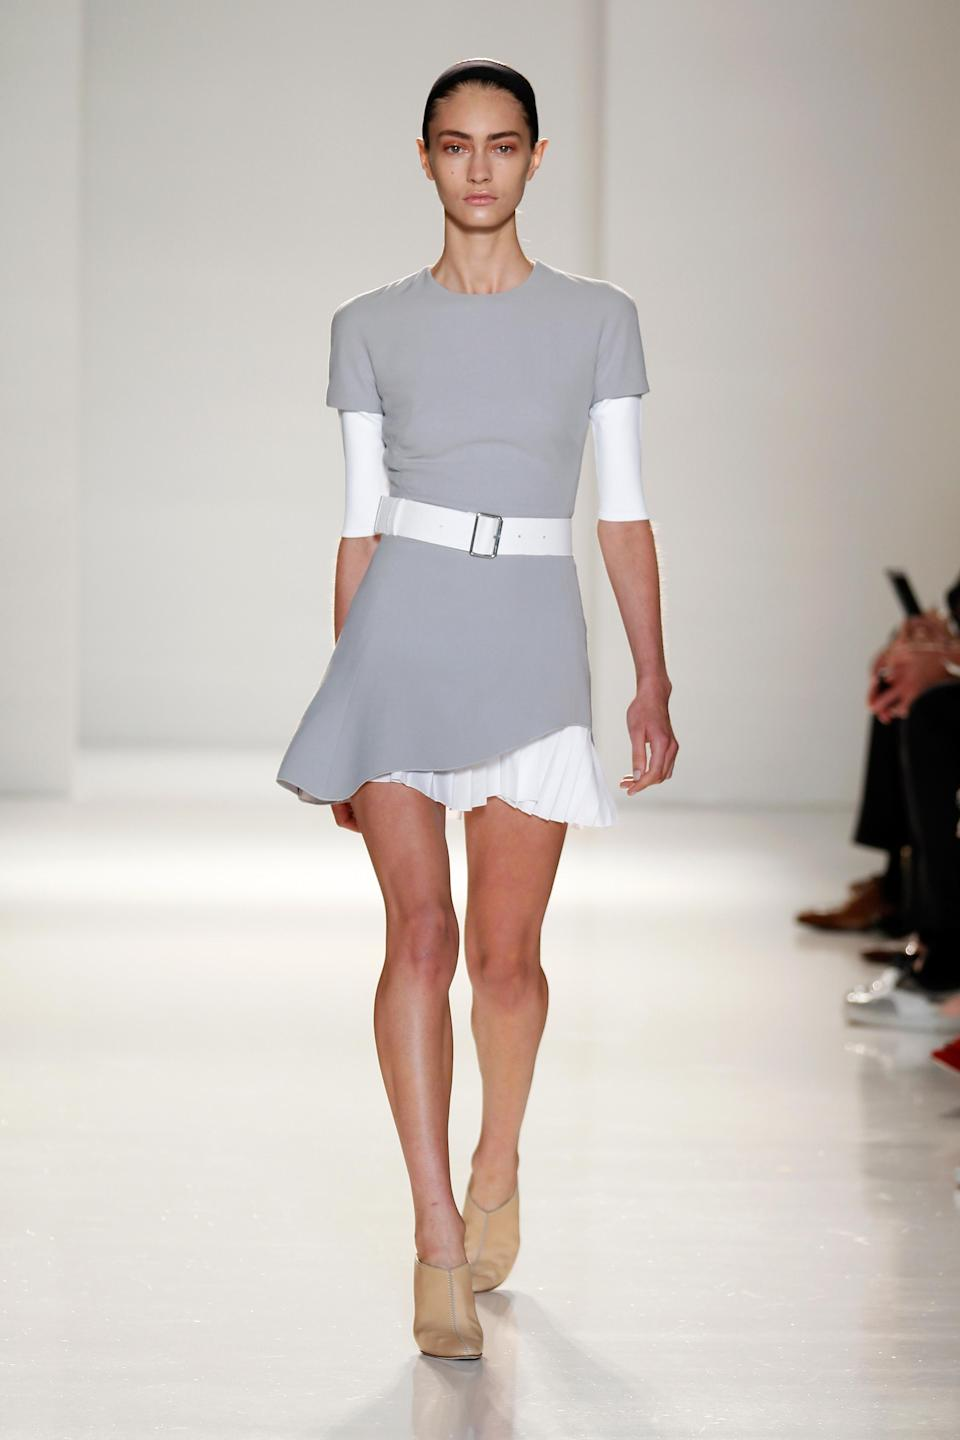 <p>Shortly before opening her highly-anticipated Dover Street store (a reminder that she's a serious fashion player) – the designer debuted her SS15 line. Models stepped out in utilitarian workwear as Beckham returned to a more demure colour palette once again with boxy blazers and spring-fresh suits that wouldn't look out of place in our wardrobe RN. <em>[Photo: Getty]</em> </p>